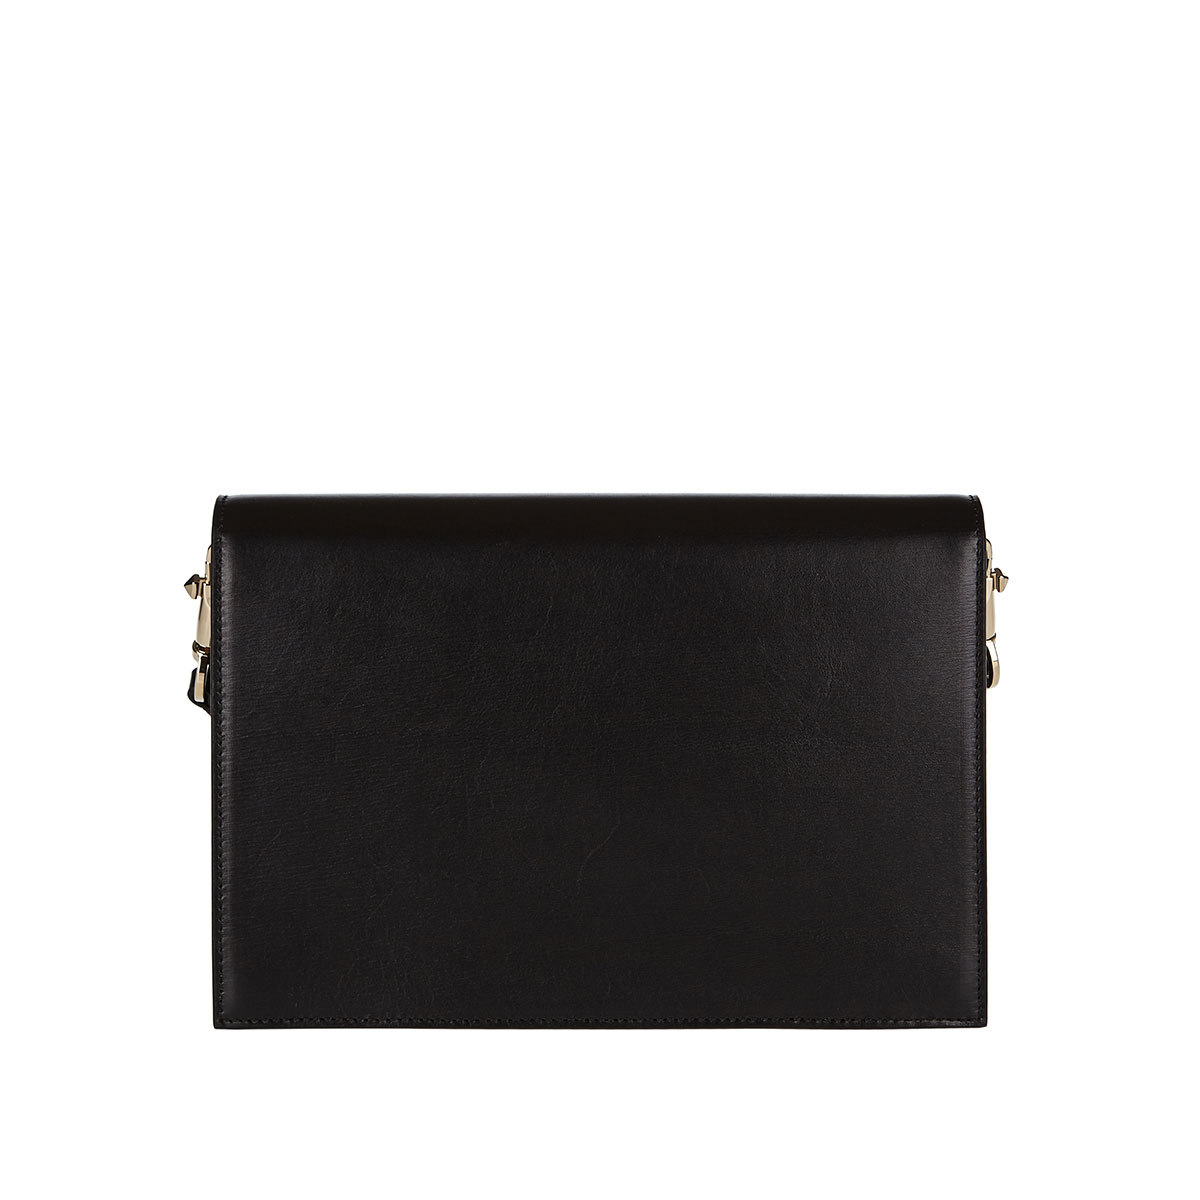 VCASE leather crossbody bag